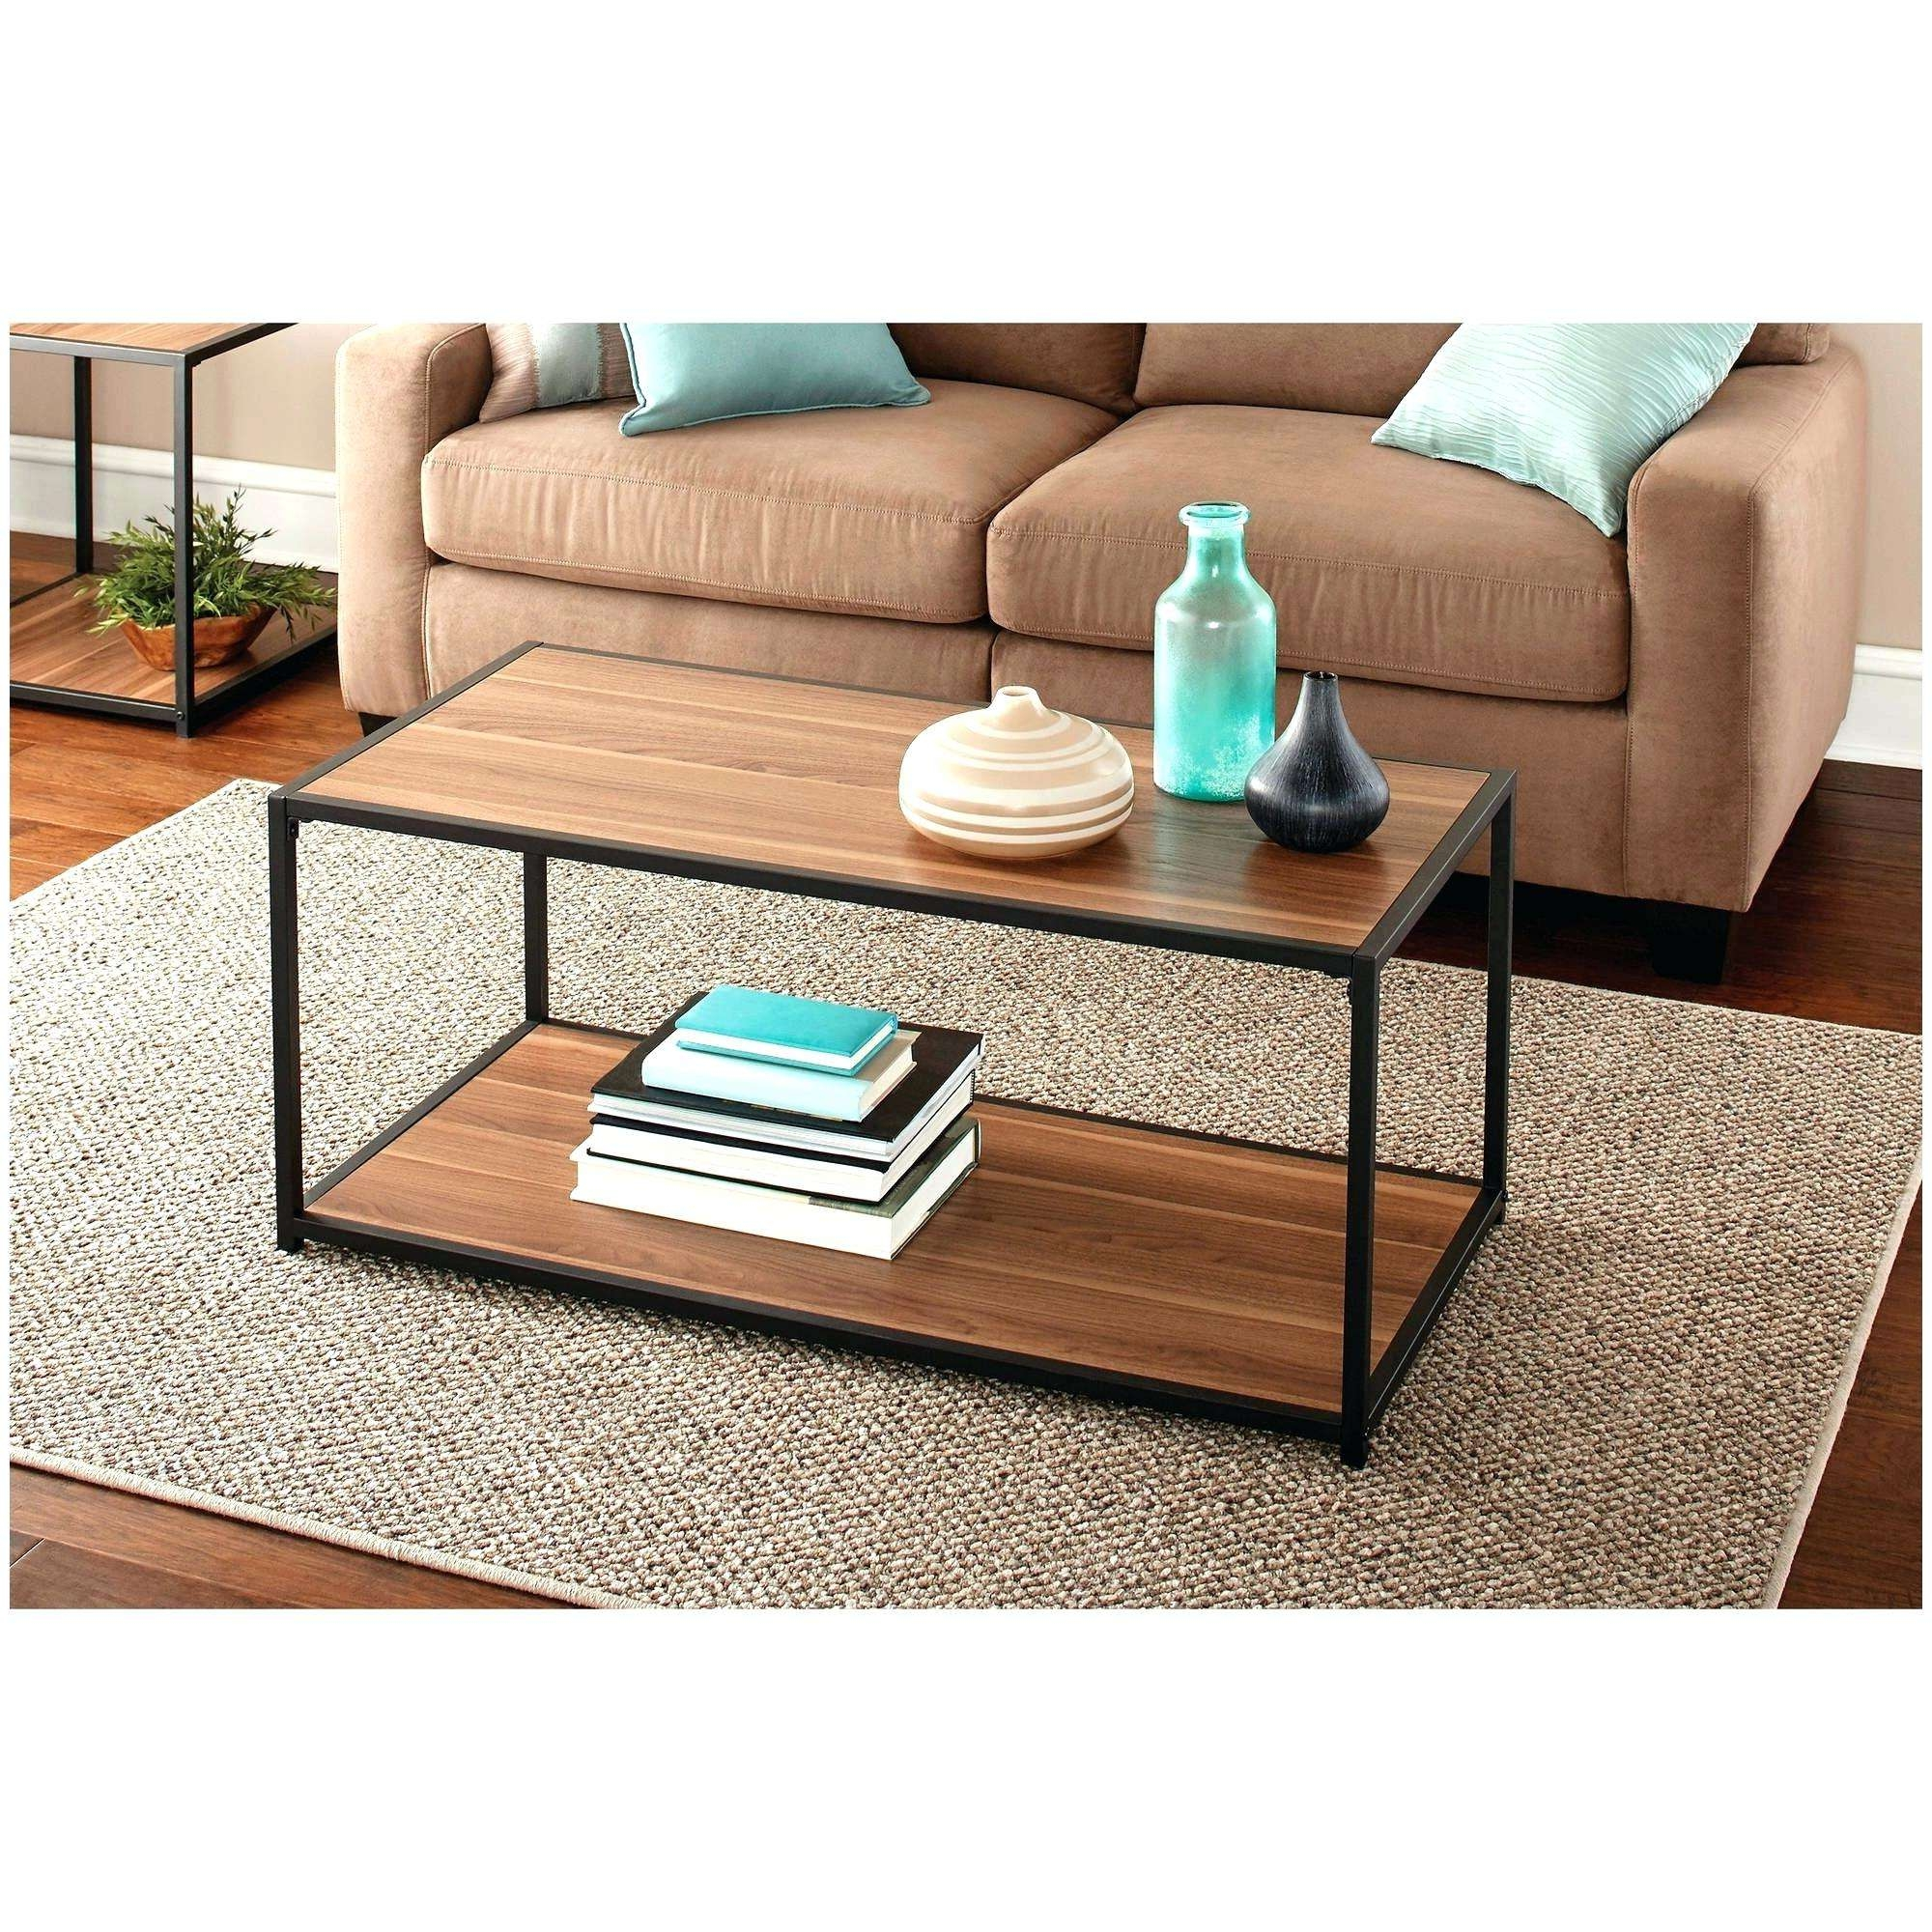 20 Best Collection of Baby Proof Coffee Tables Corners